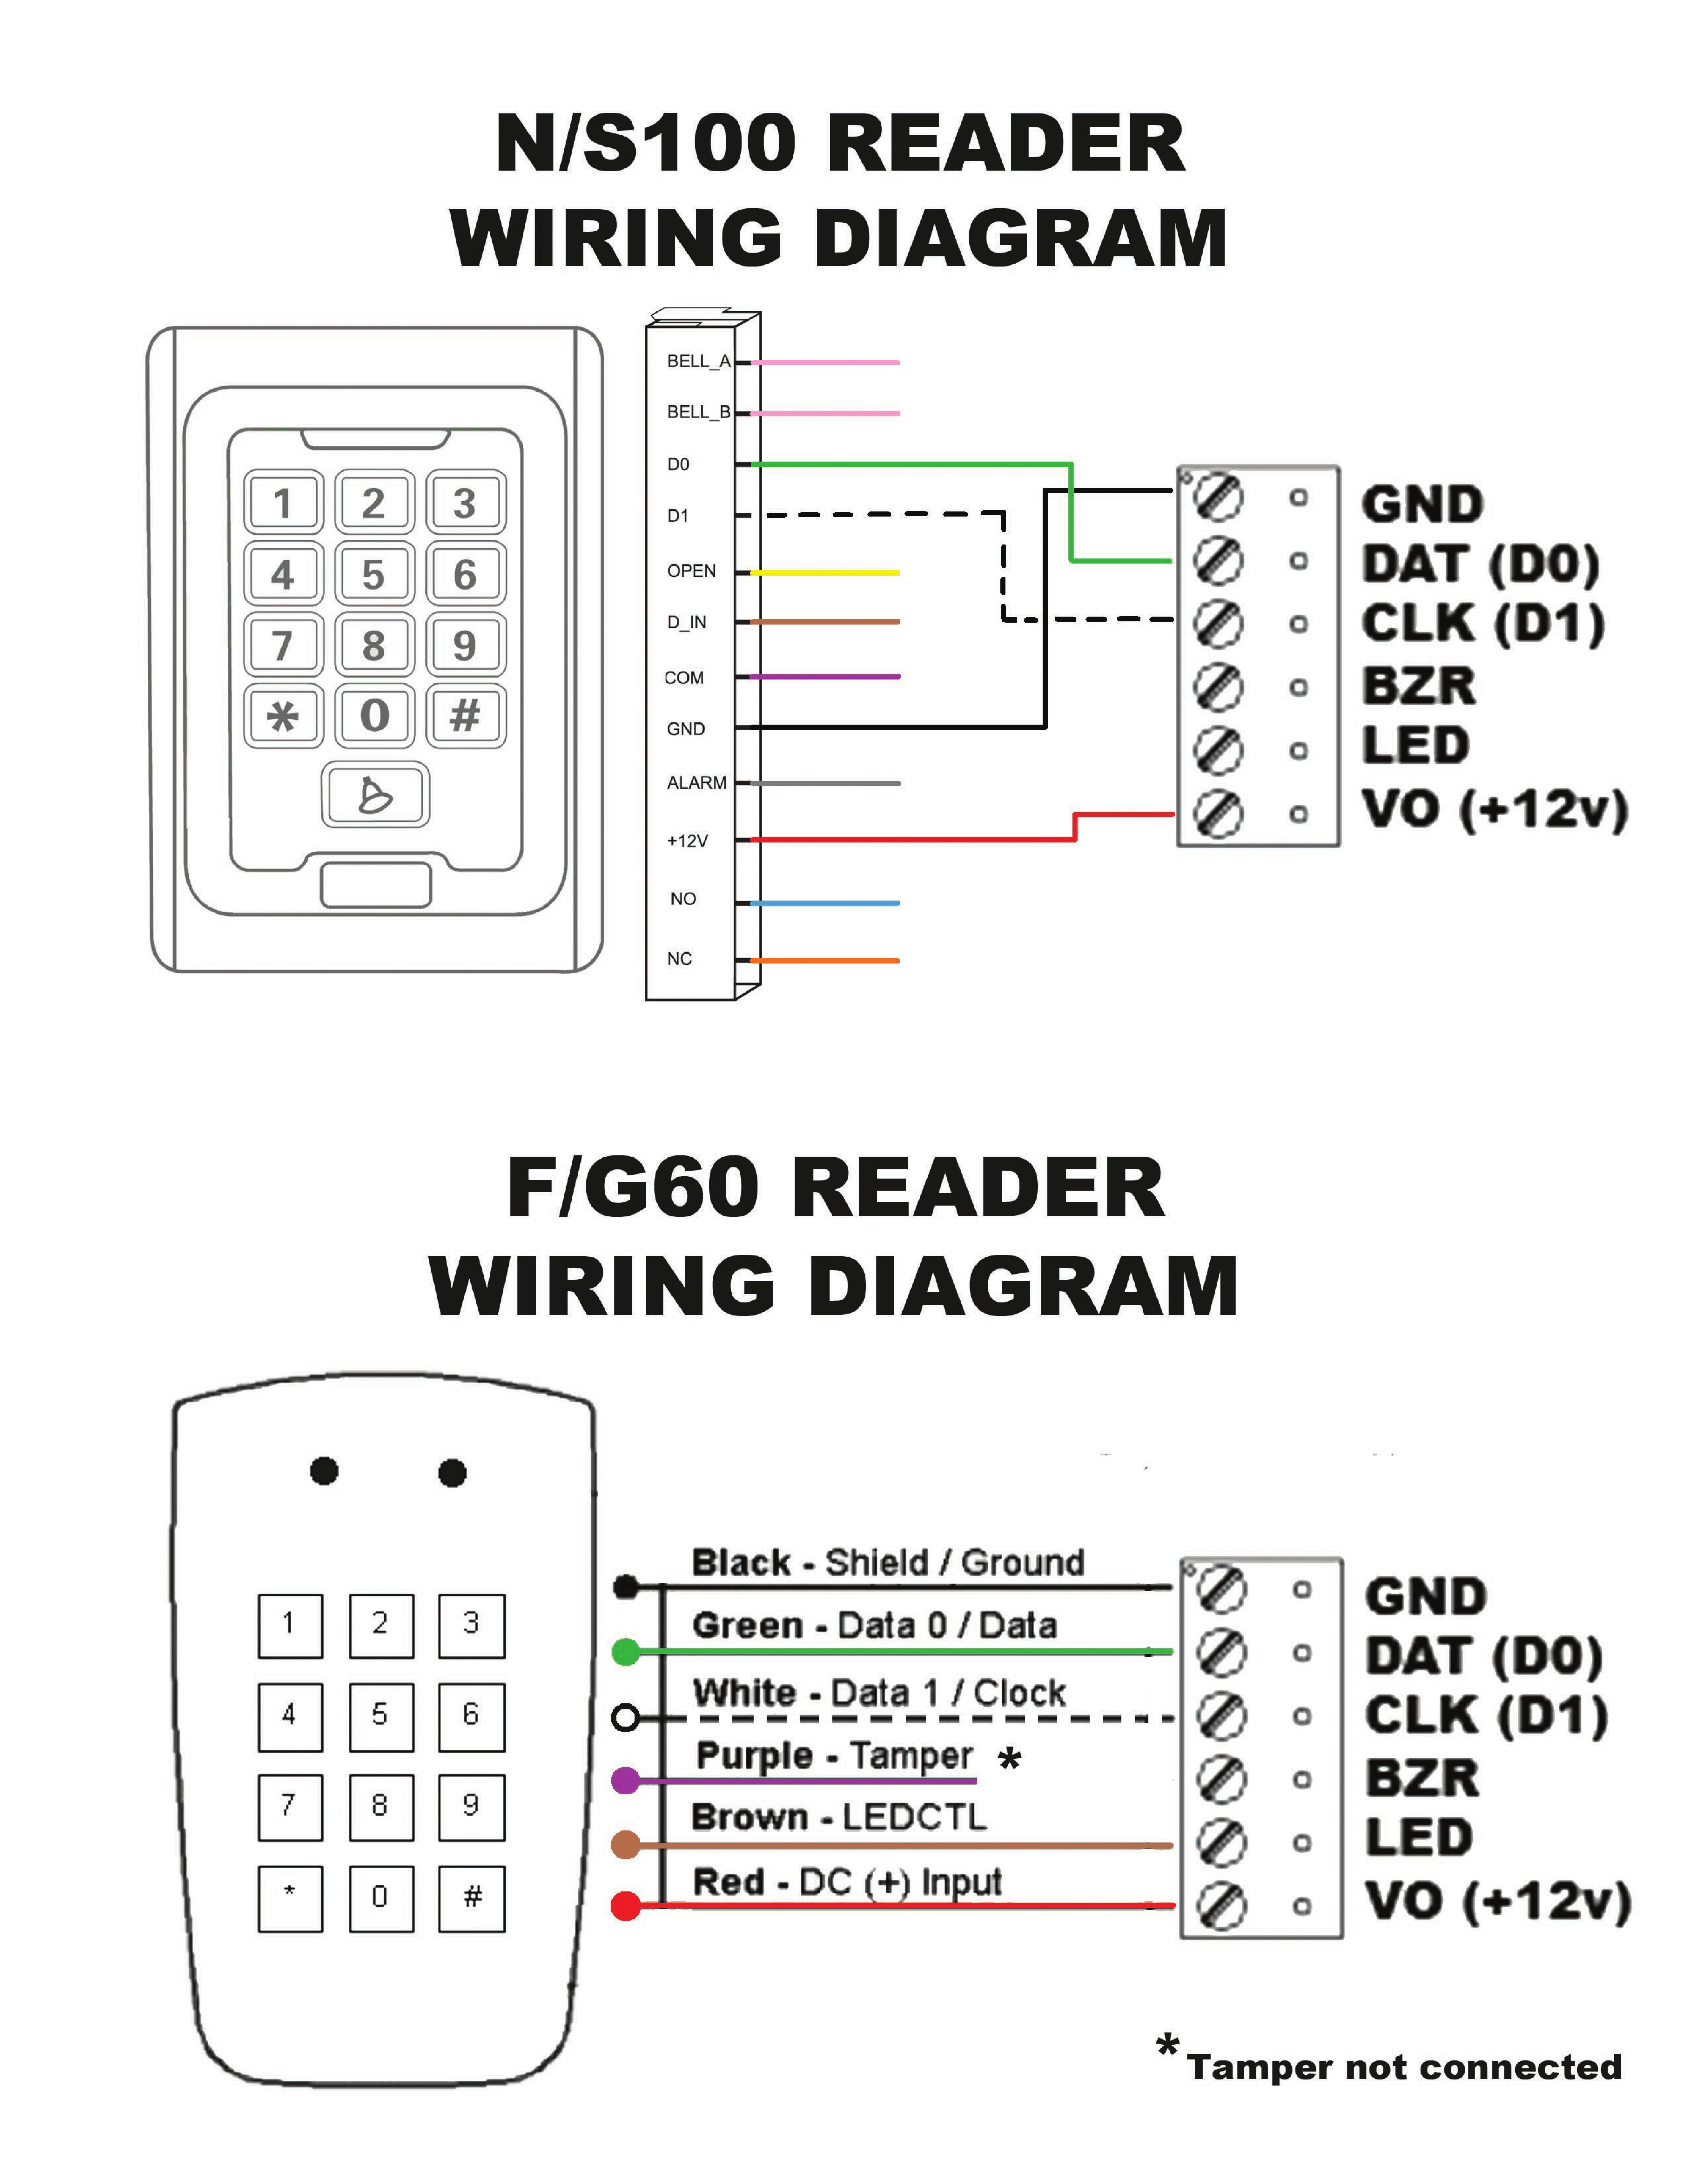 ls f60 g60 and ls n100 s100 readers wiring diagram remotelock rh lockstate elevio help winca s100 wiring diagram smart s100 series wiring diagram